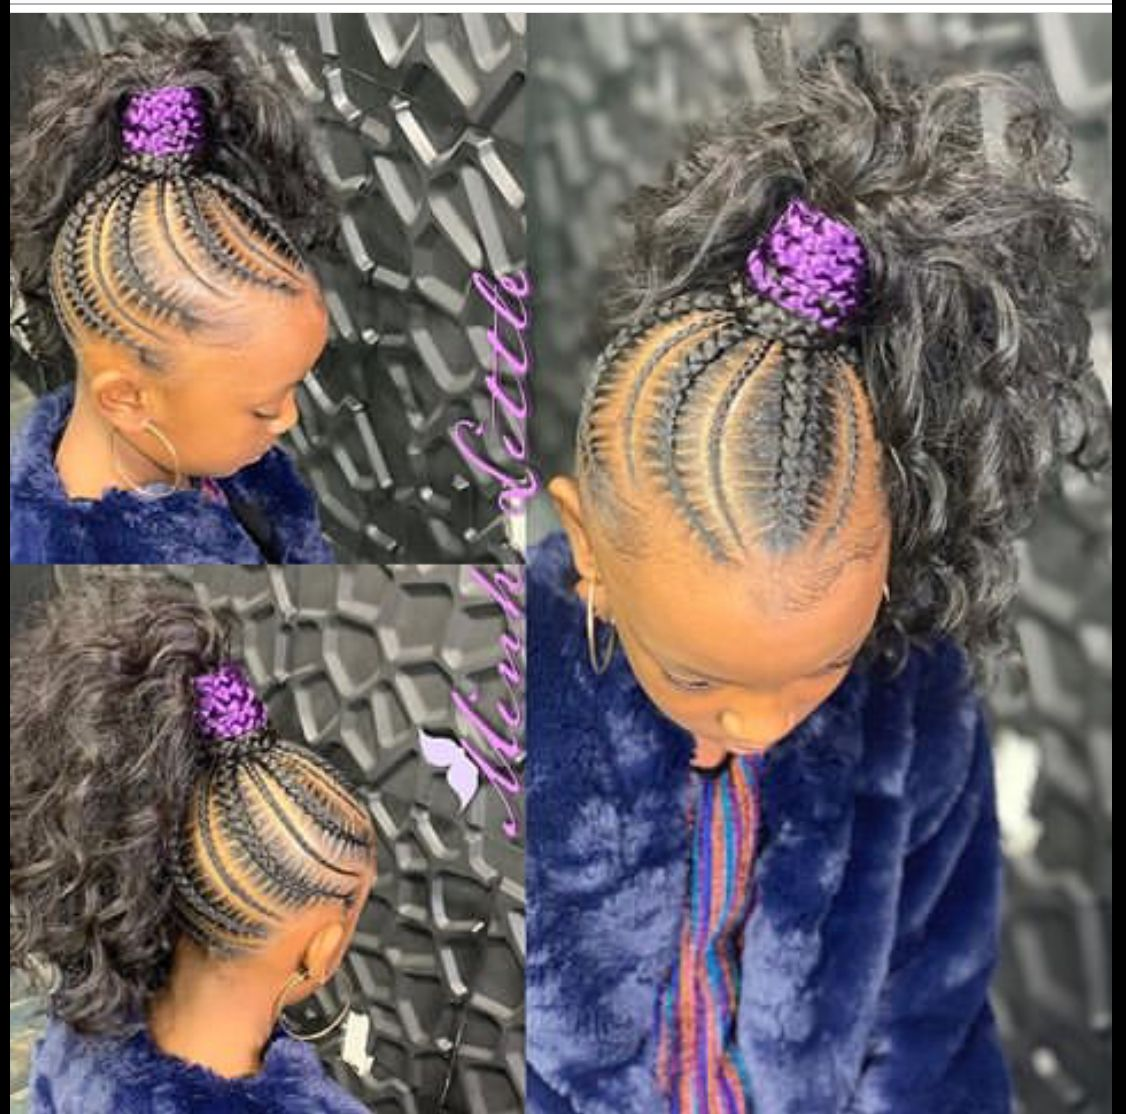 Kids Hairstyle Hair Styles Kids Hairstyles Girls Girls Hairstyles Braids